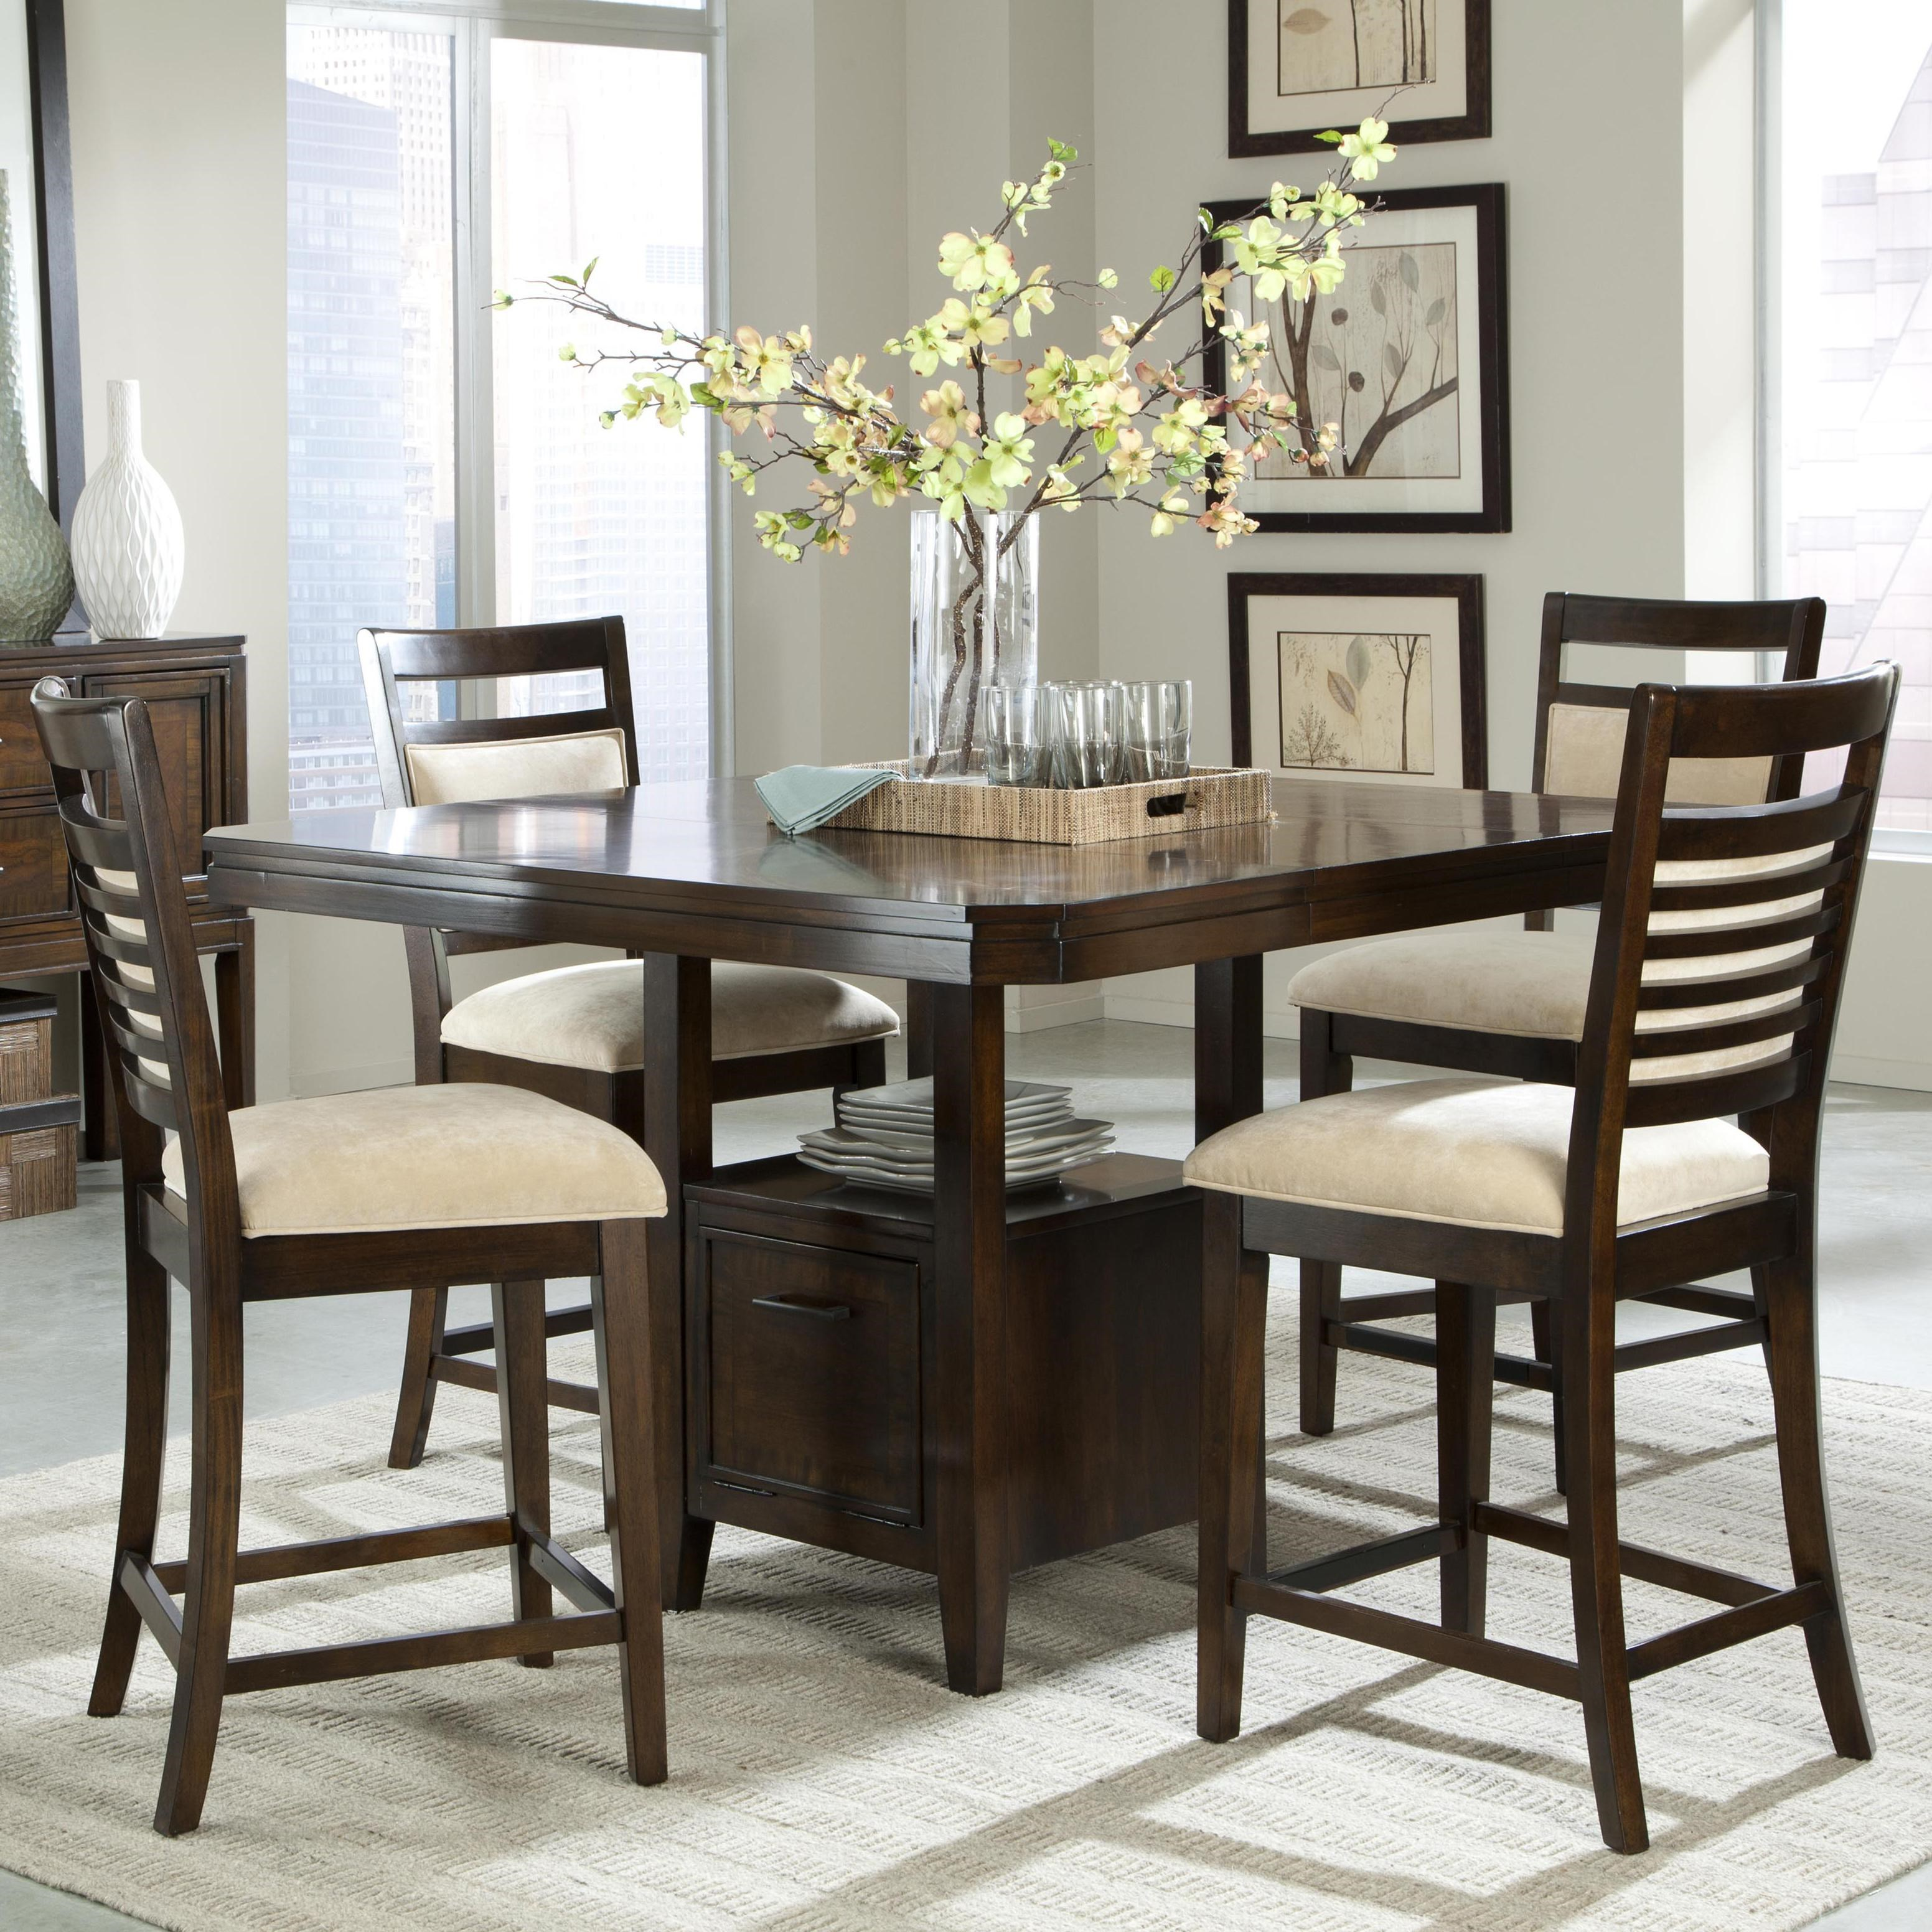 Awesome Standard Furniture Avion 5 Piece Counter Height Table Set And Upholstered Counter  Height Chairs With Ladder